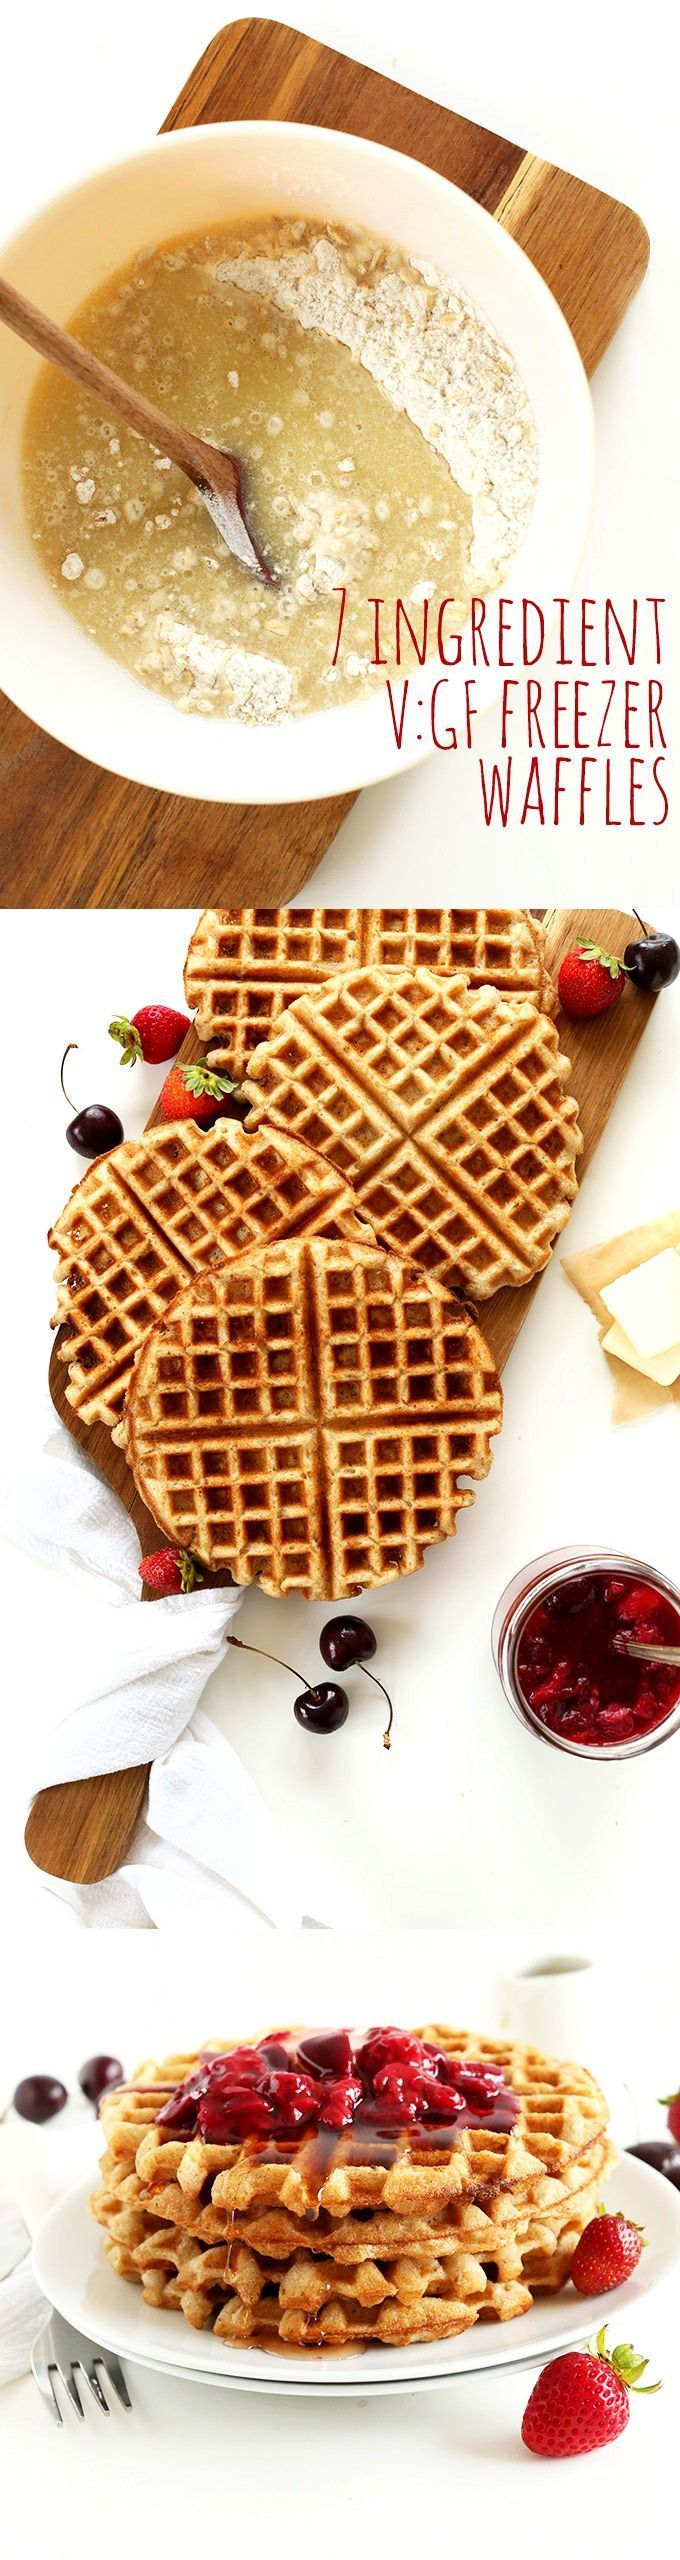 7 Ingredient V GF Waffles that are wholesome, hearty, naturally sweetened and highly customizable by season and preference. #healthy #vegan #glutenfree